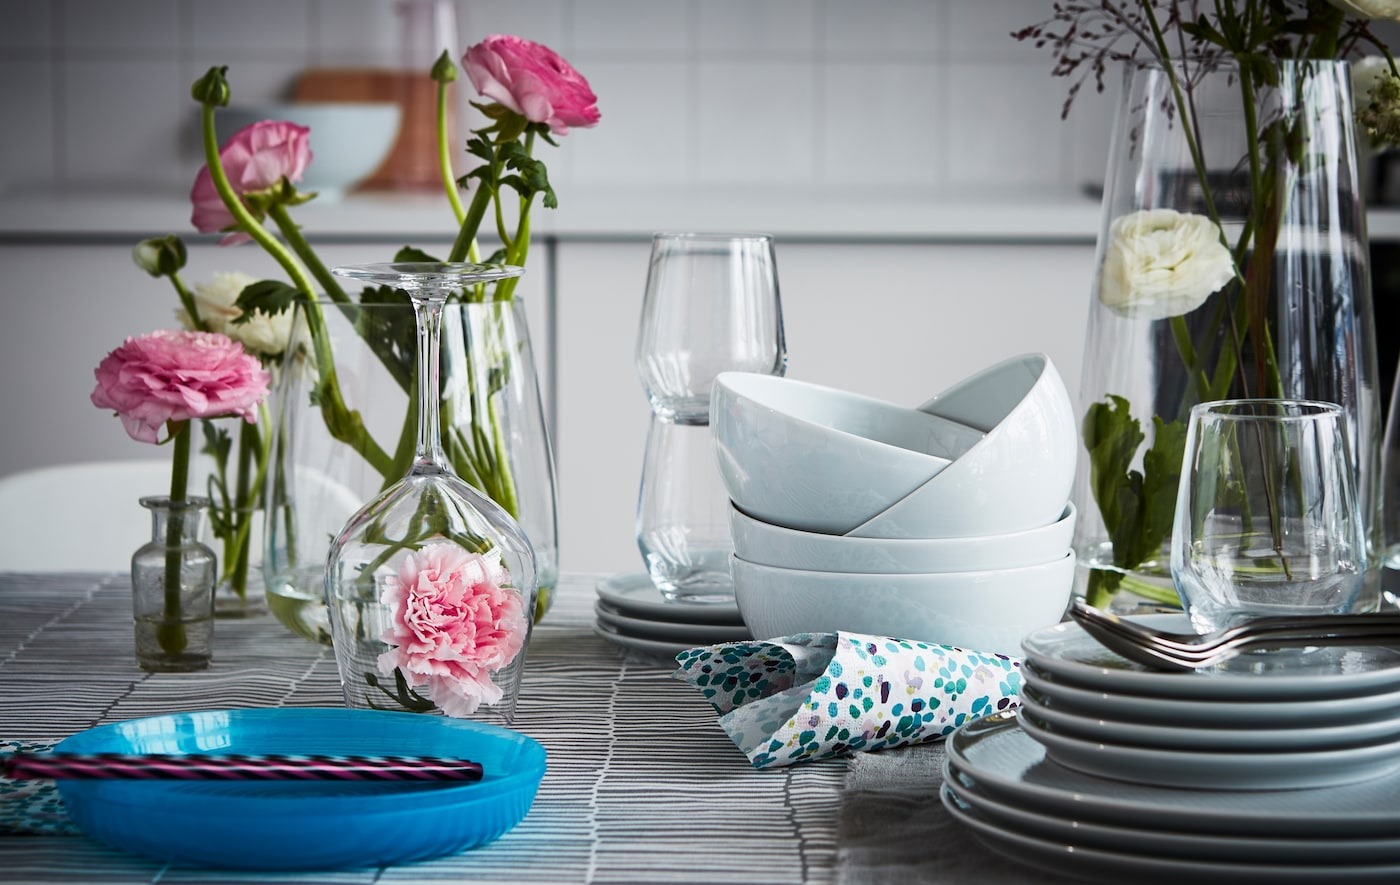 Create a fresh table setting with a modern mix of dinnerware, cutlery and beautiful wine glasses. IKEA offers a lot of glasses such as IVRIG white wine glass in clear glass.